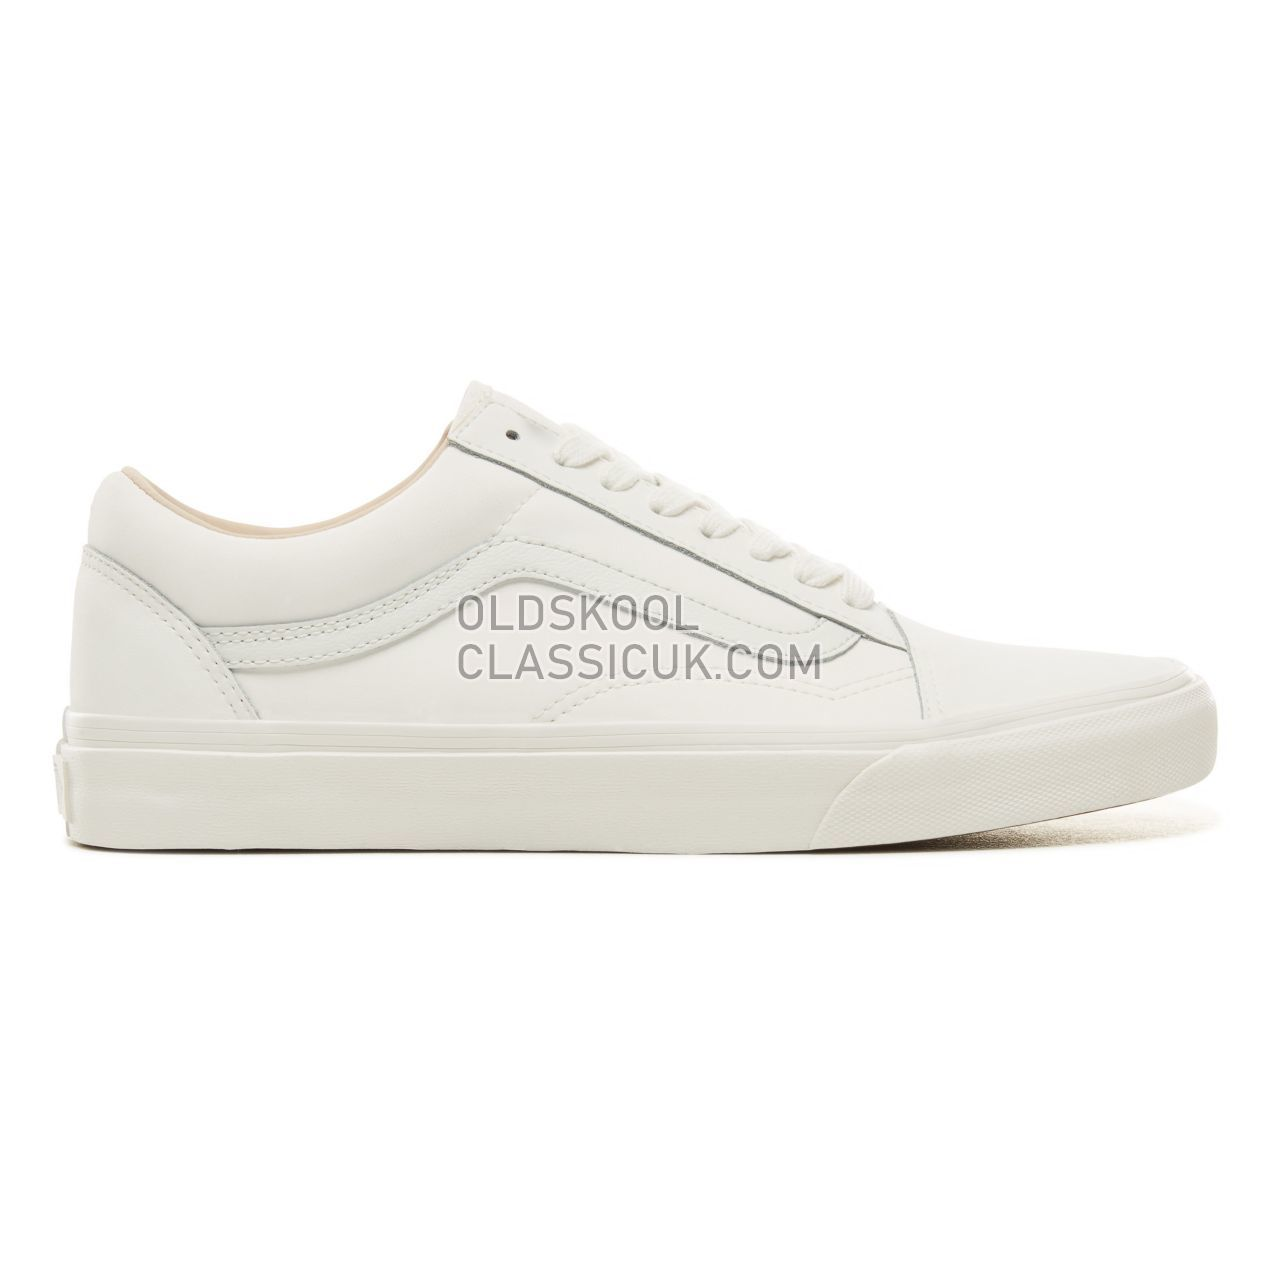 Vans Vansbuck Old Skool Sneakers Mens Womens Unisex (Vansbuck) Blanc De Blanc VA38G1U5V Shoes